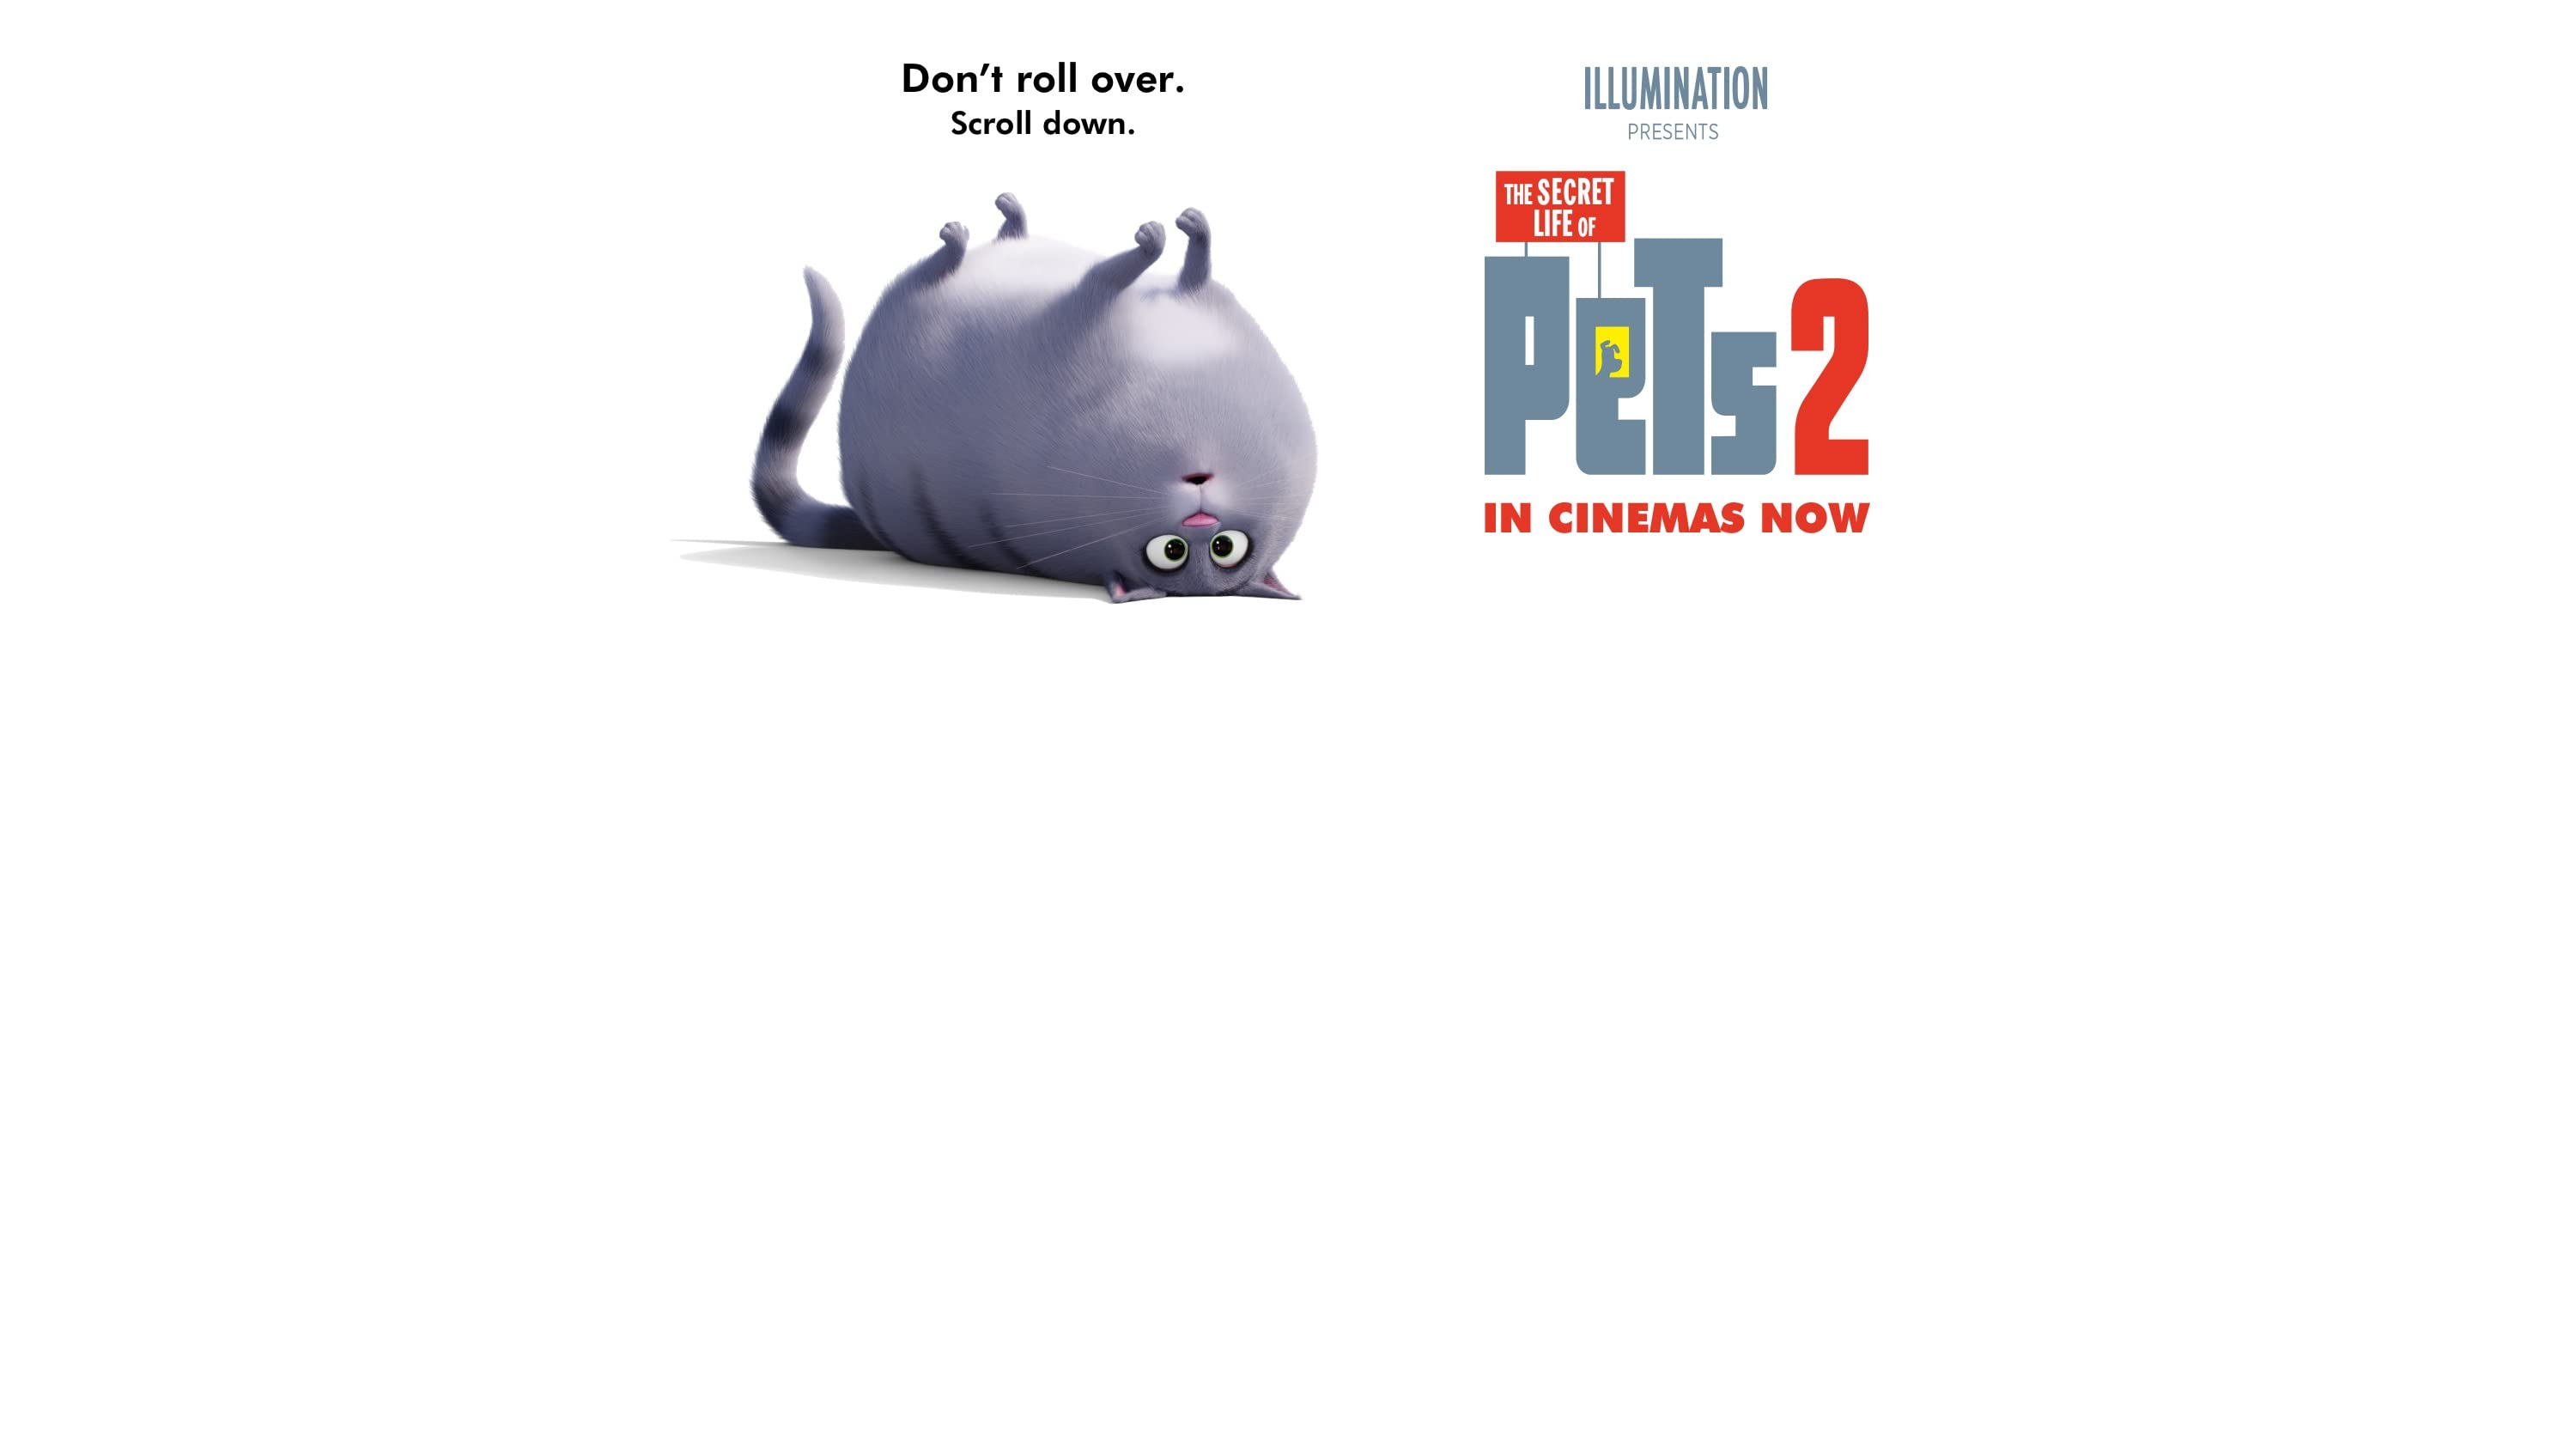 Illumination presents Secret Life of Pets 2. In cinemas May 24. Don't roll over. Scroll down